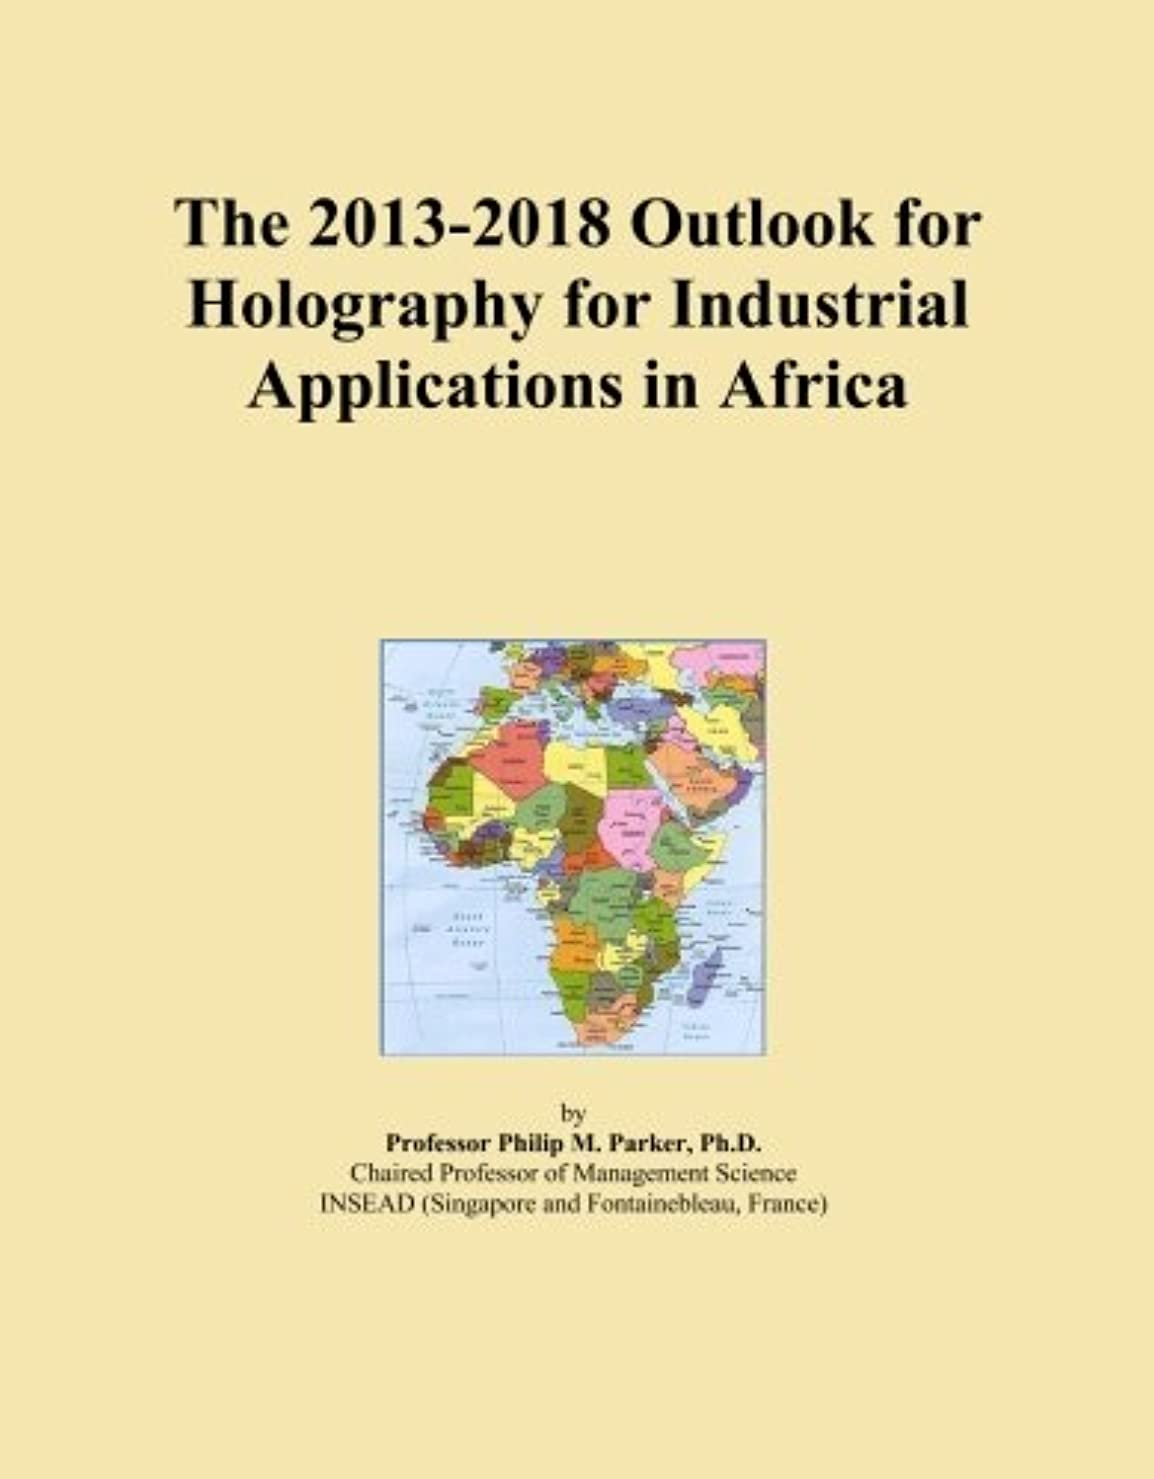 オンス懇願する進むThe 2013-2018 Outlook for Holography for Industrial Applications in Africa